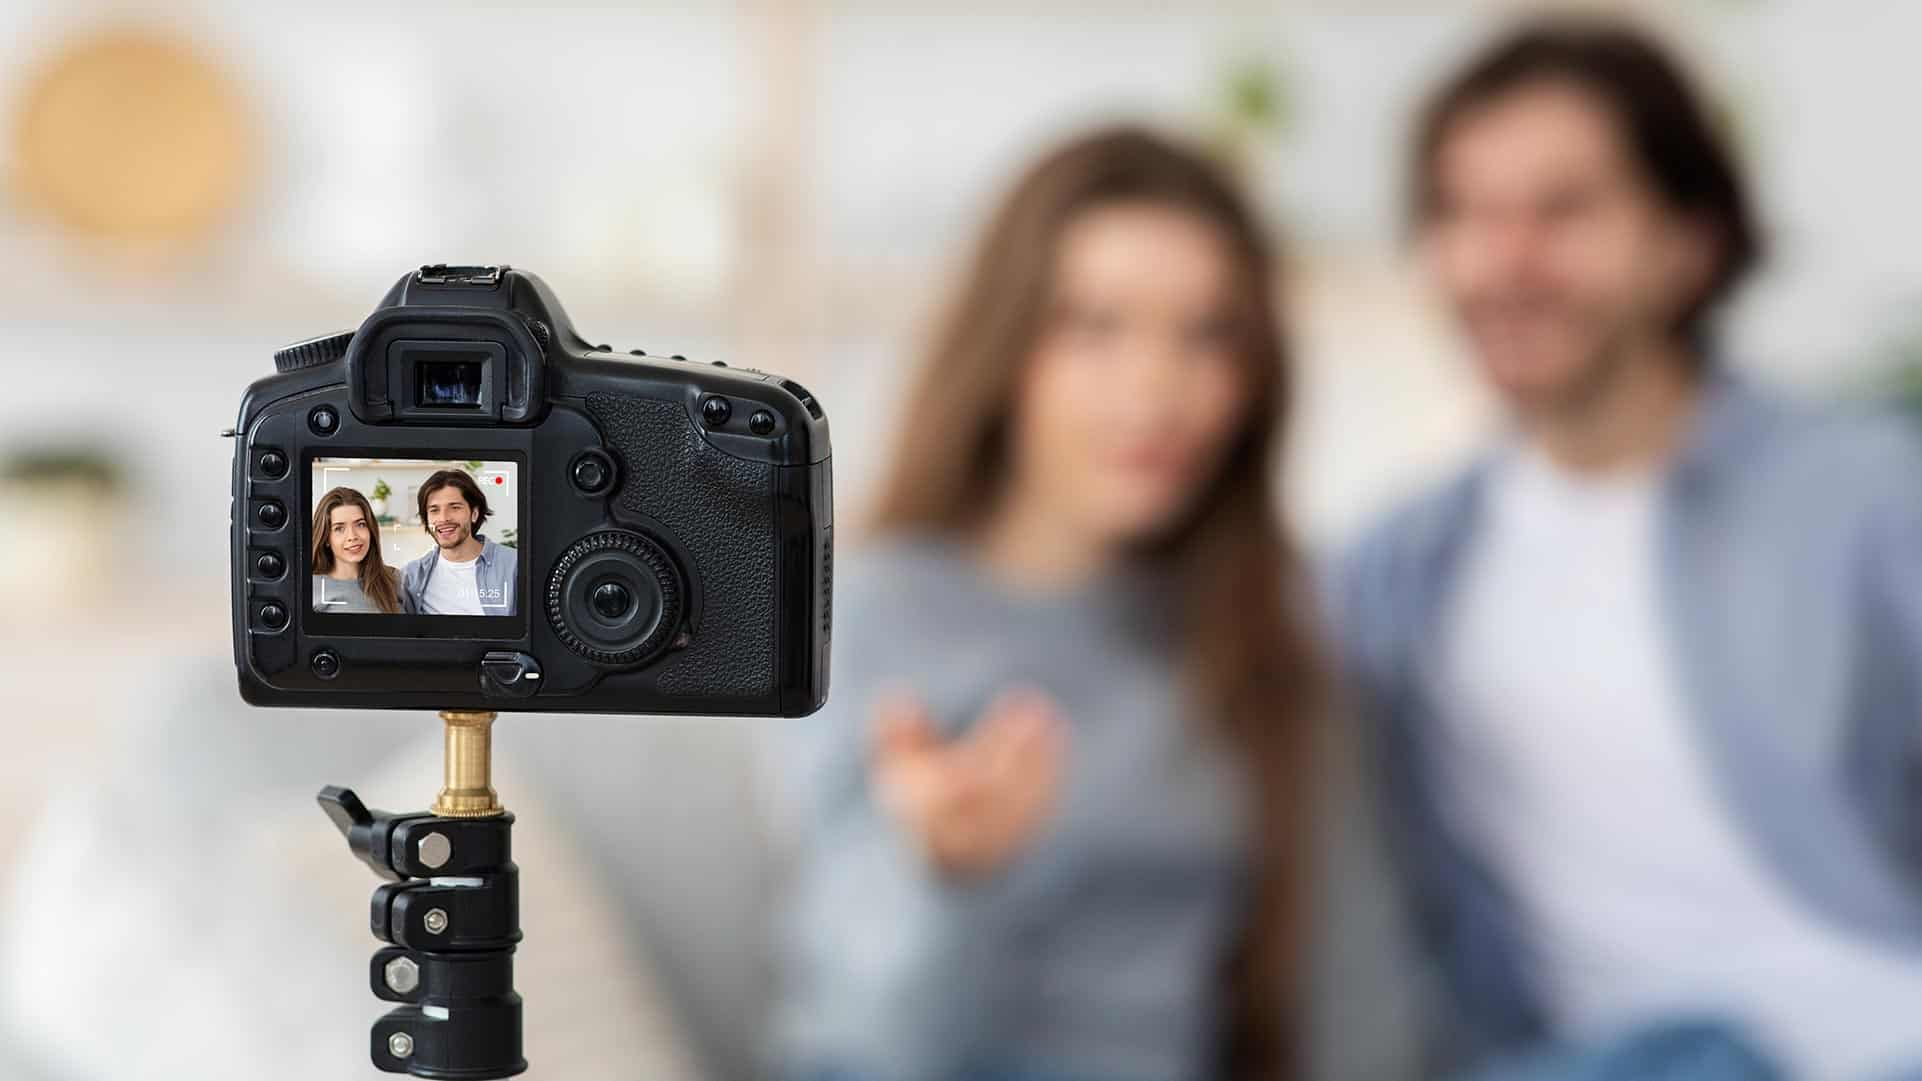 selective focus on camera filming couple while video production is going